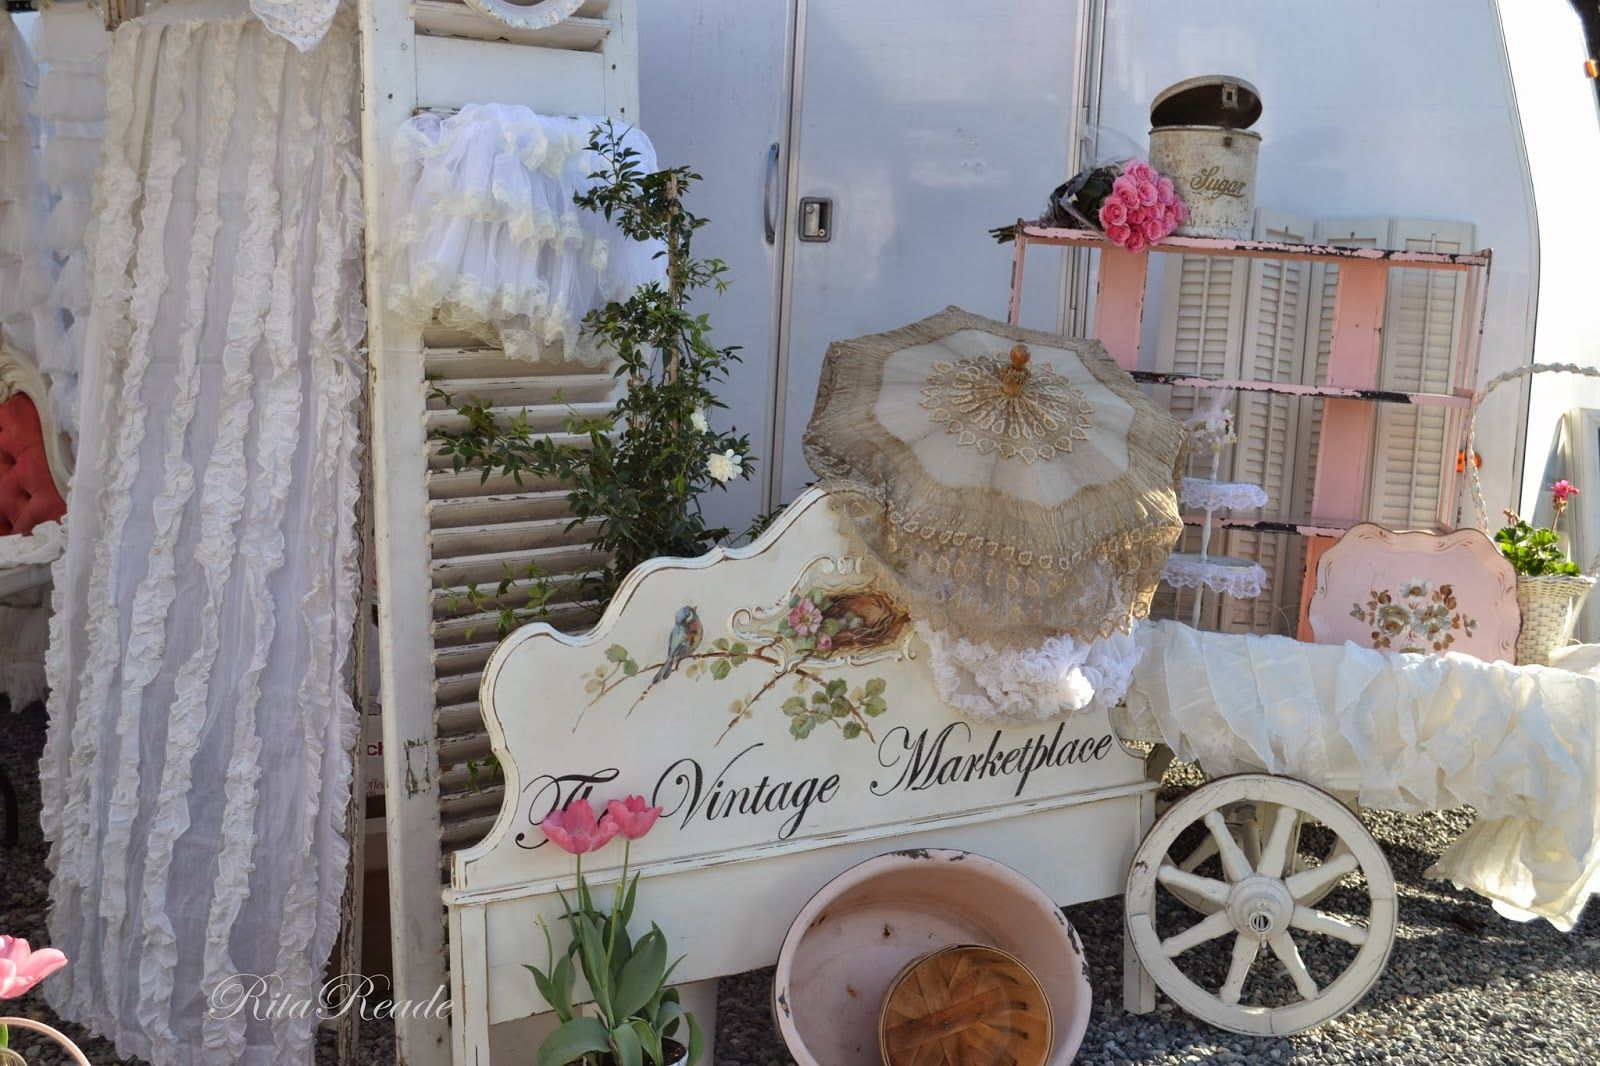 The Vintage Marketplace: Entrance of The Vintage Marketplace at the Oaks - March 2014